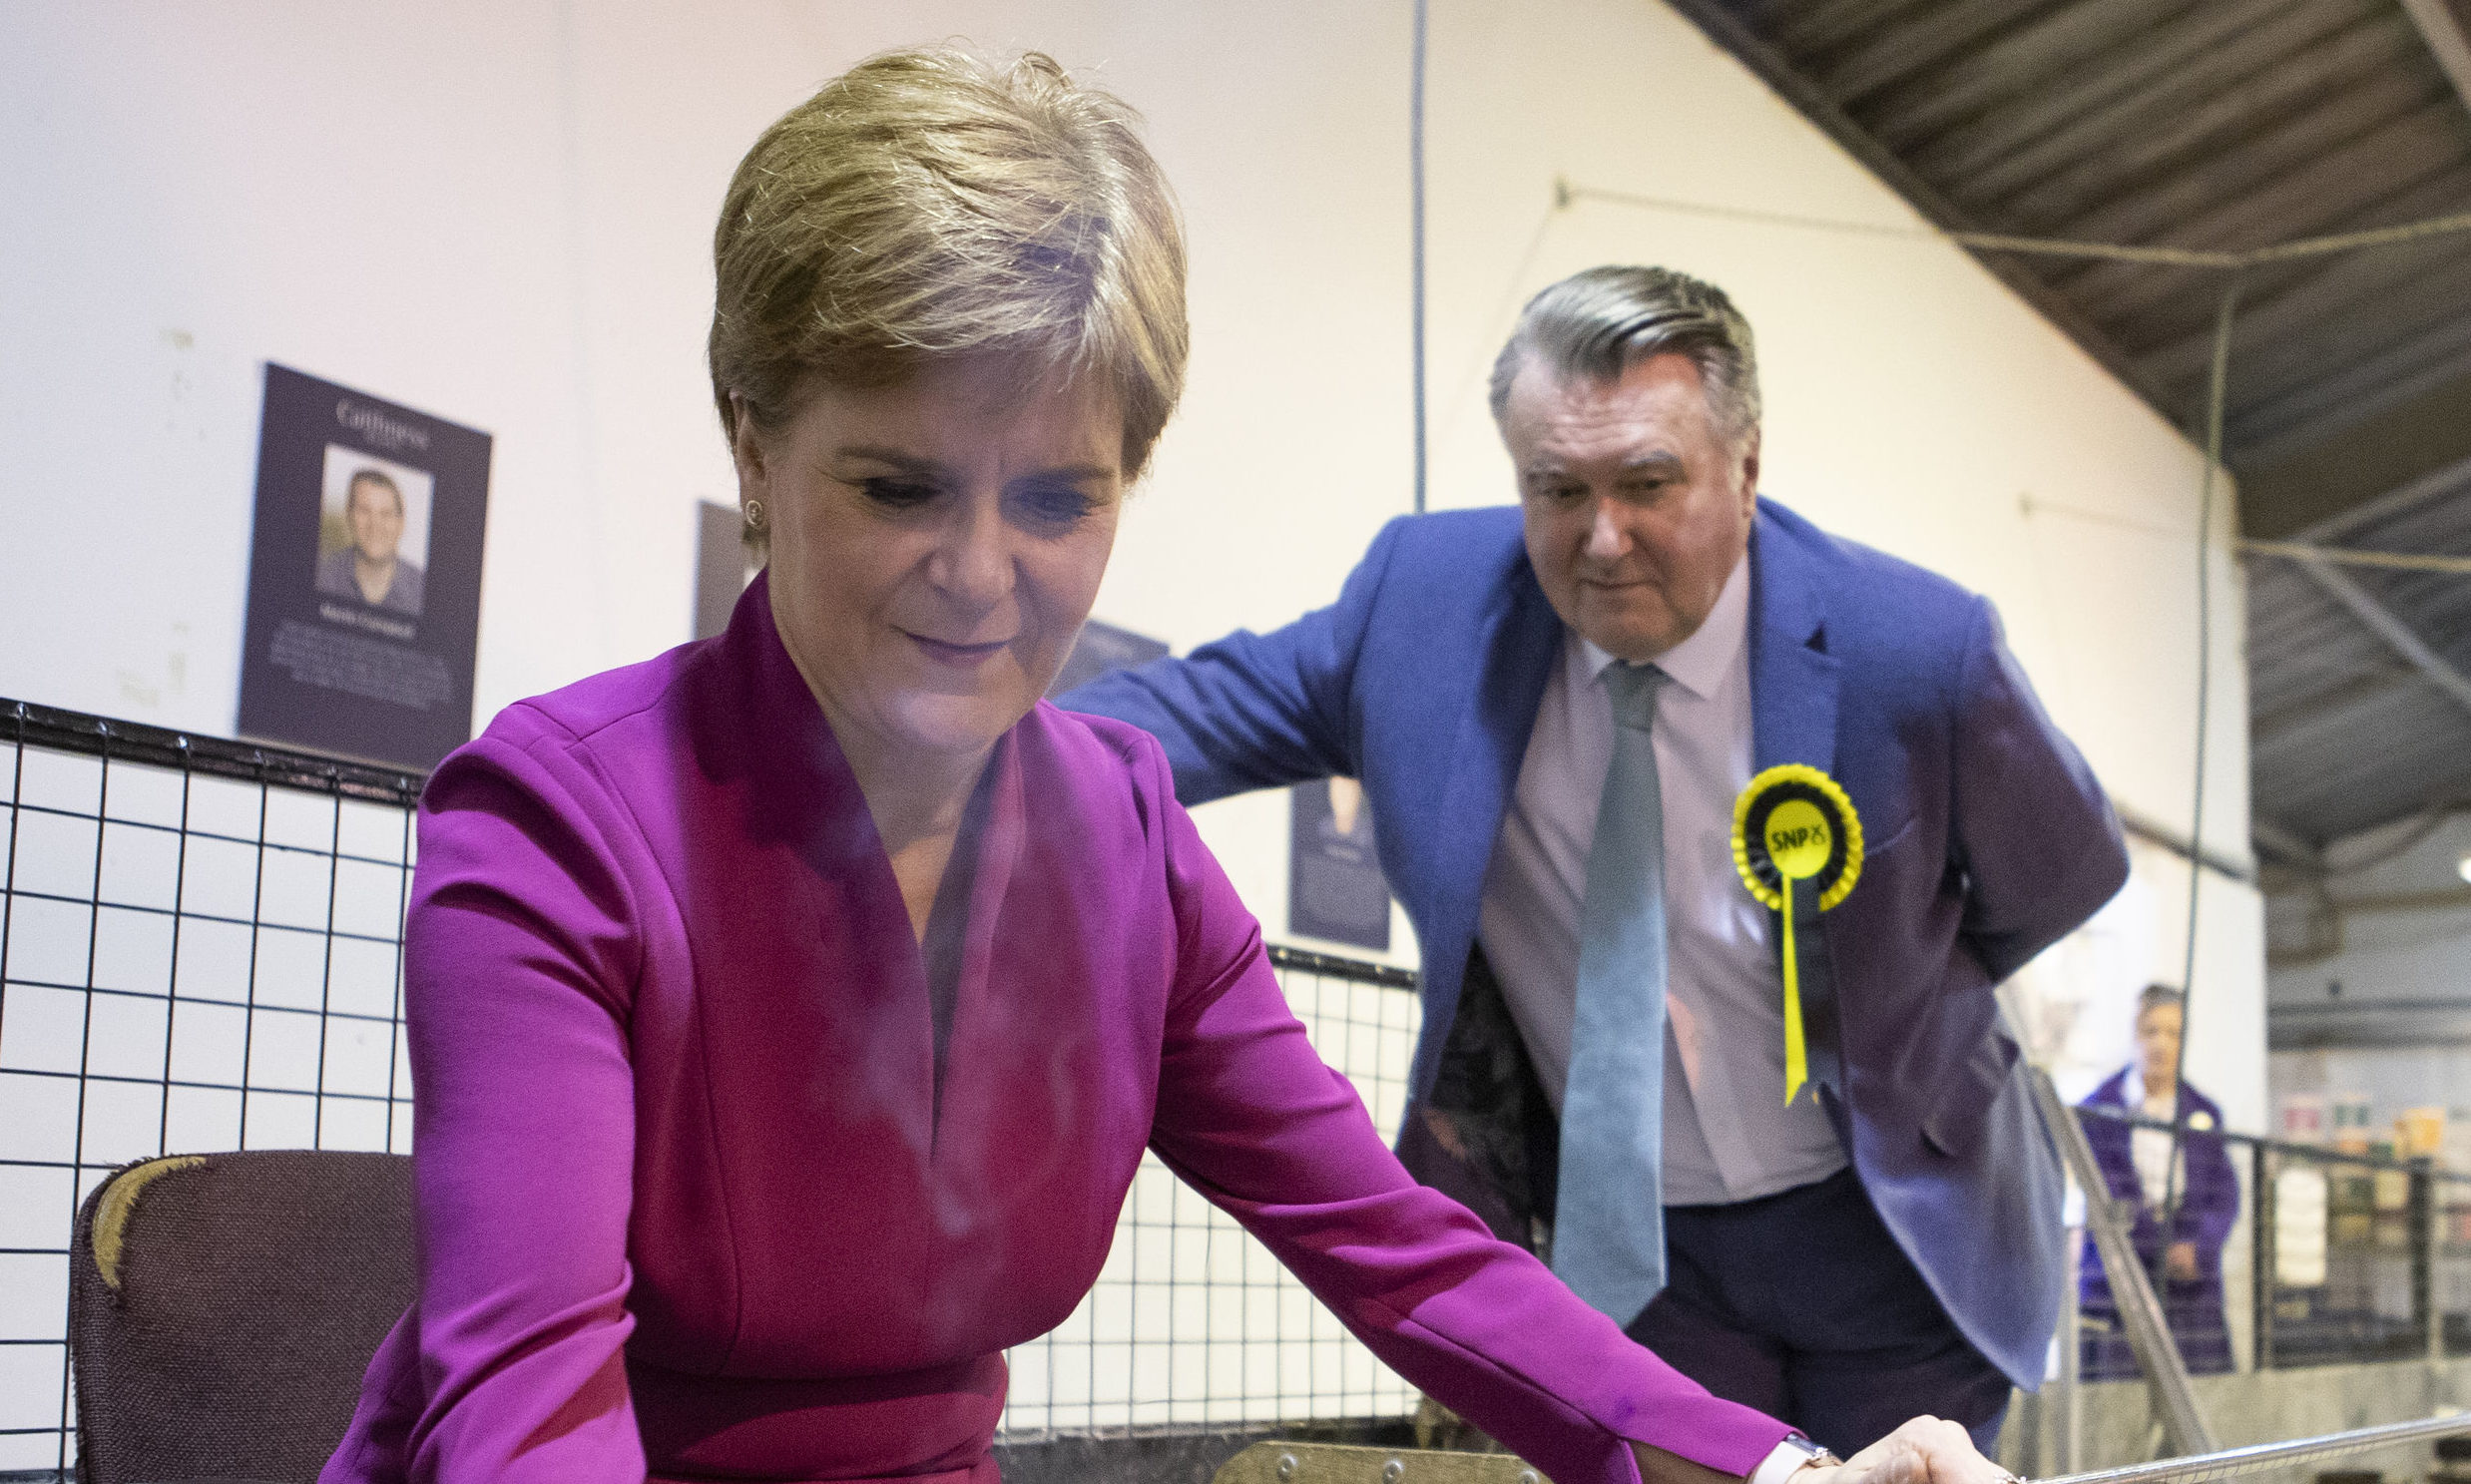 John Nicolson with SNP leader Nicola Sturgeon during the campaign.